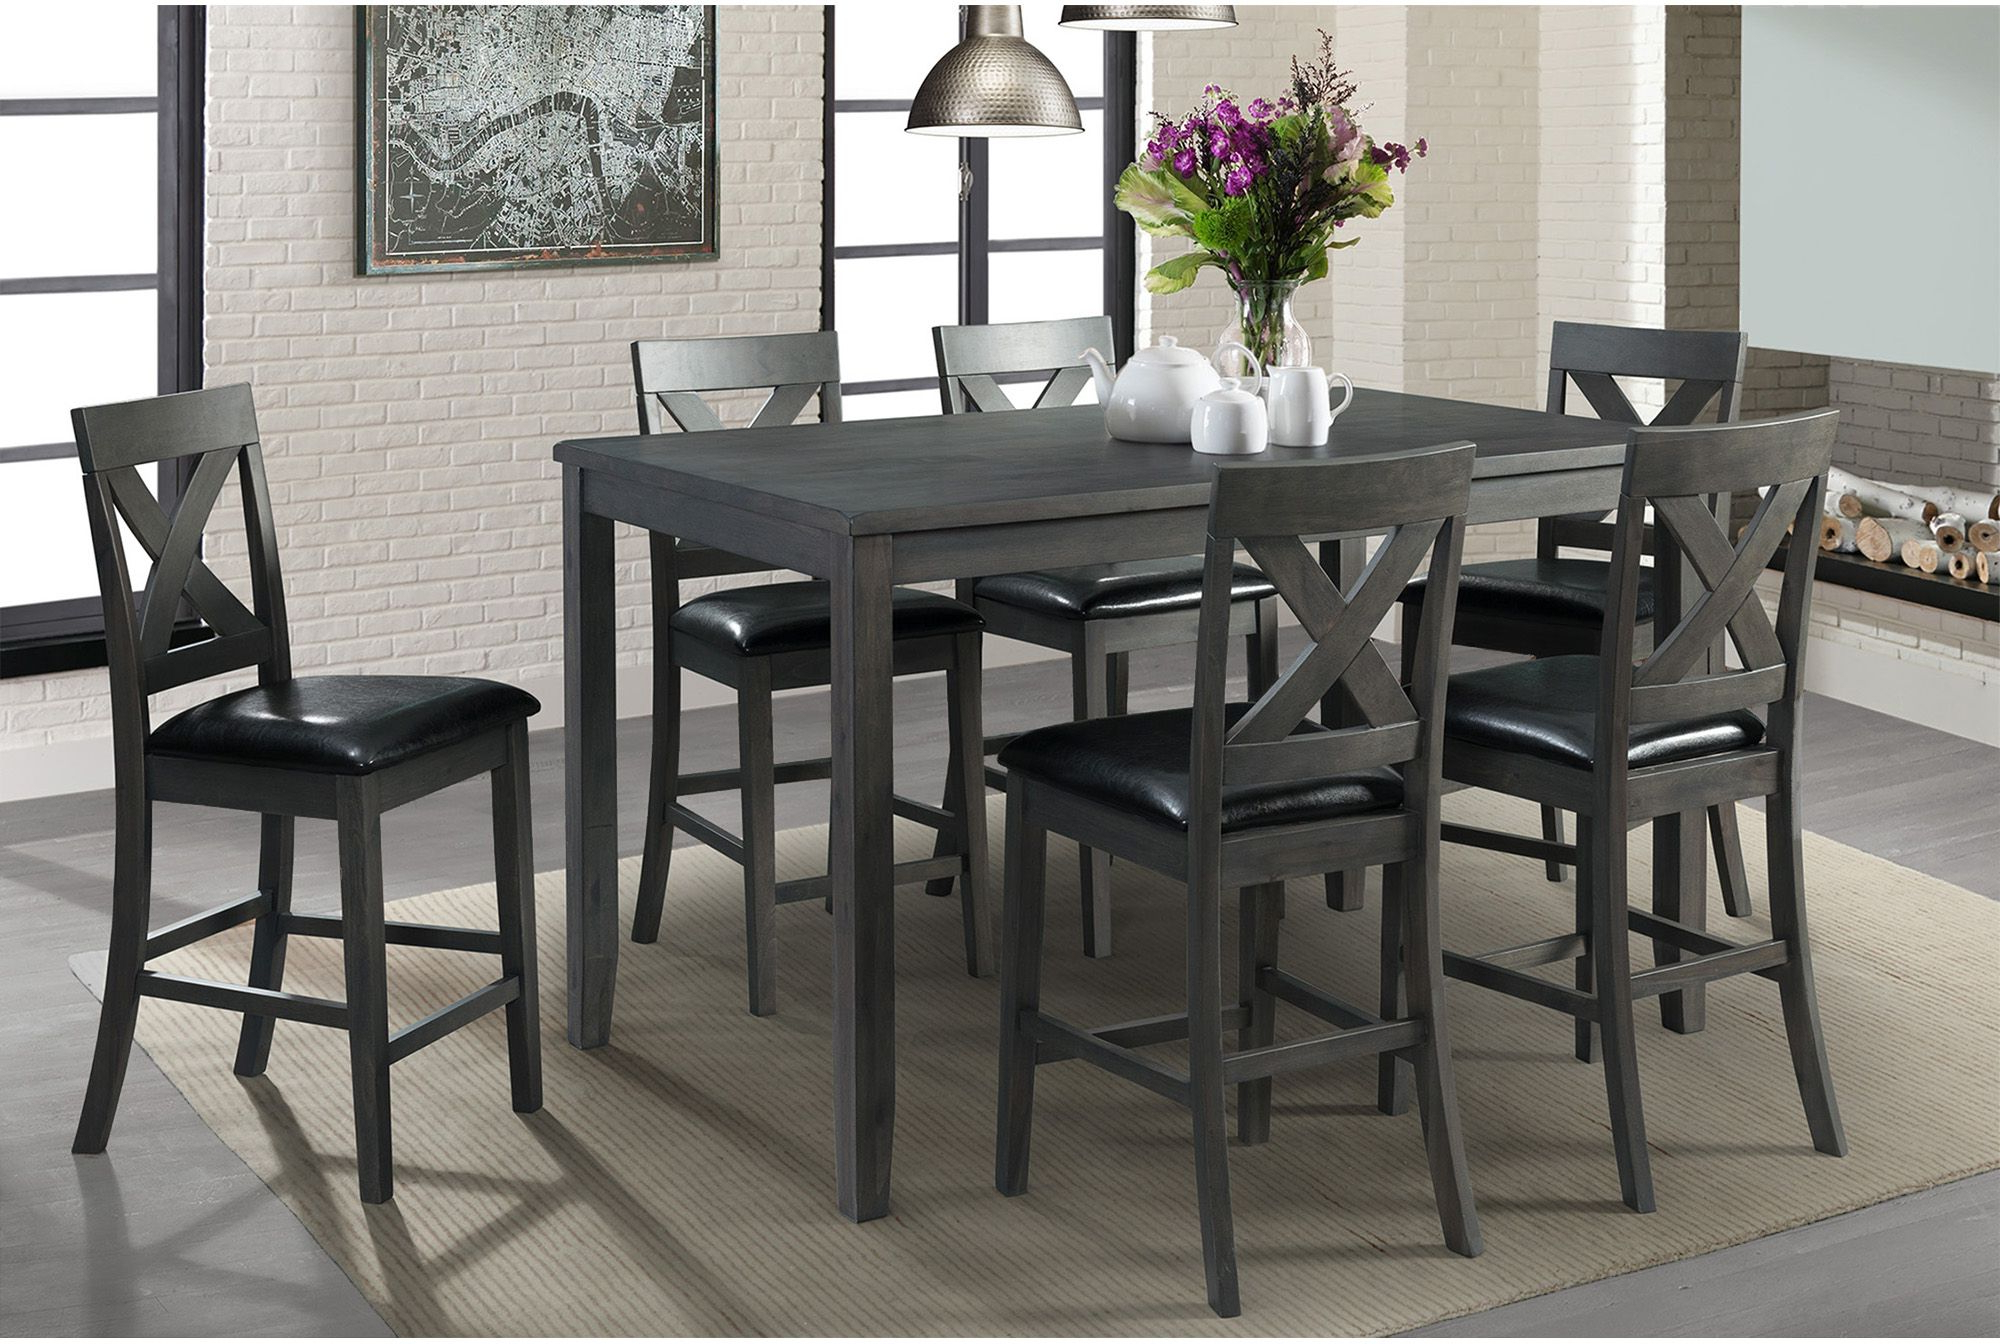 Alexa Gray 7 Piece Counter Height Dining Set From Elements Furniture Within Preferred Kinsler 3 Piece Bistro Sets (View 1 of 25)